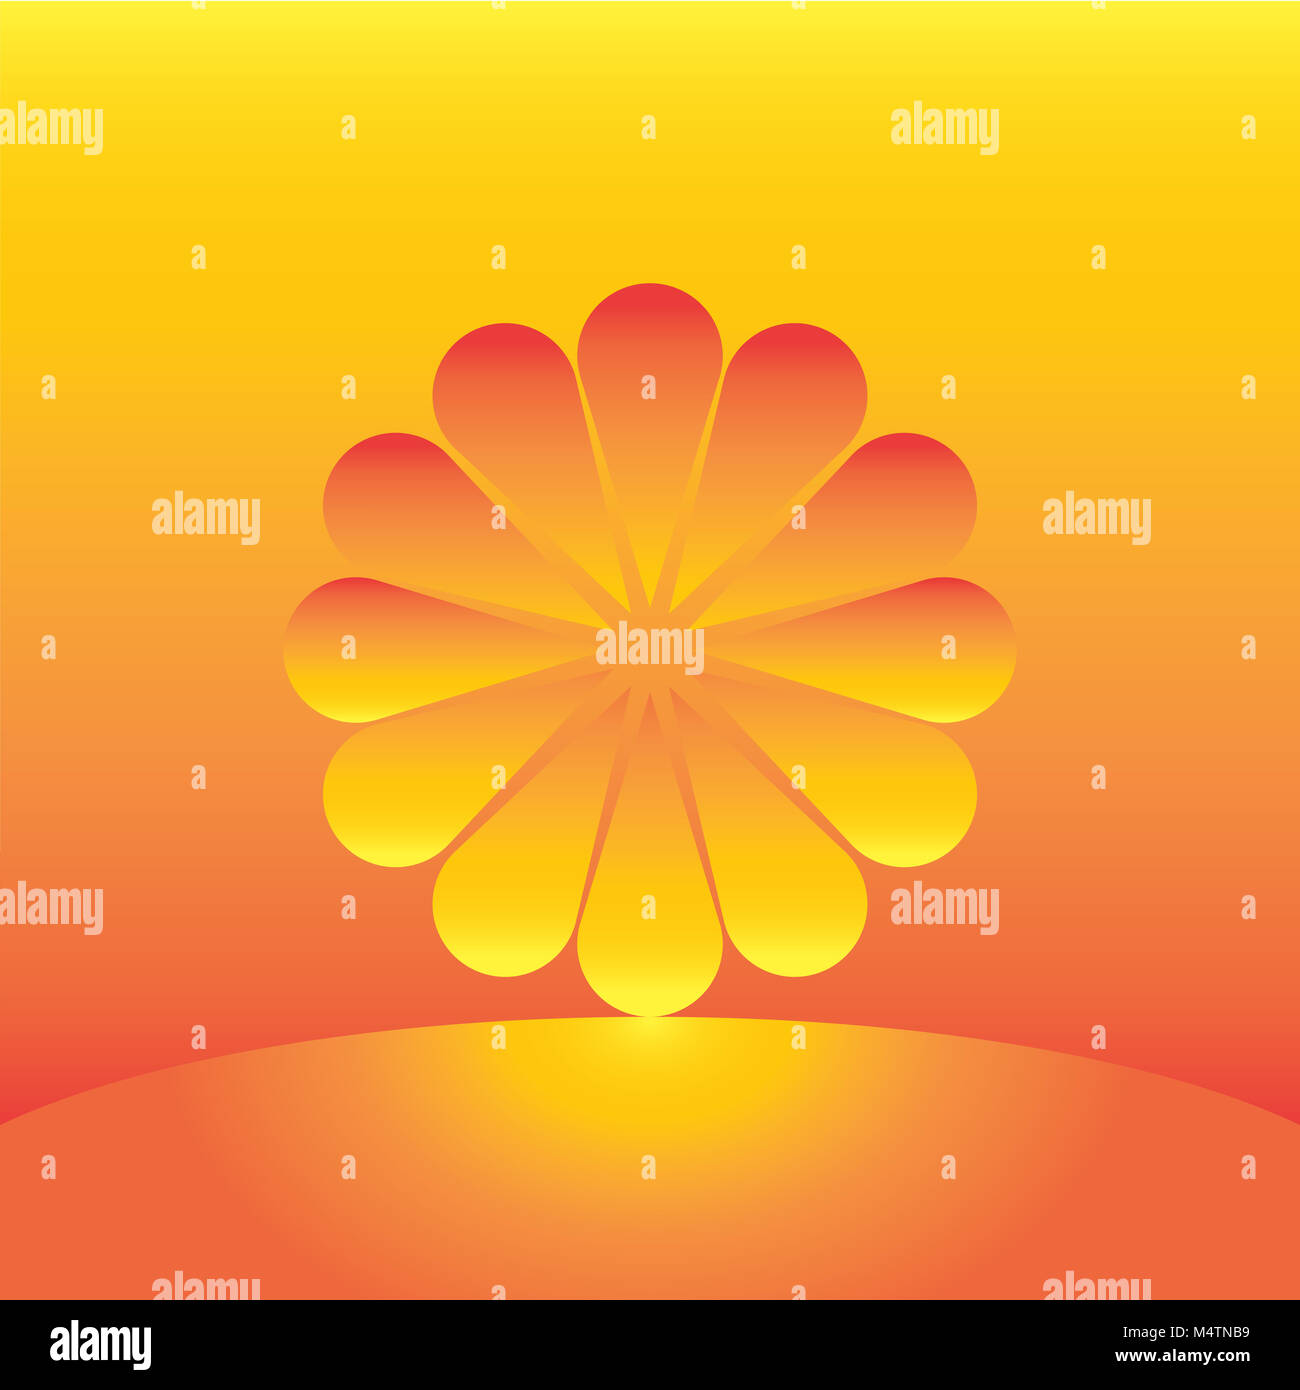 the sun as a flower that rises - Stock Image